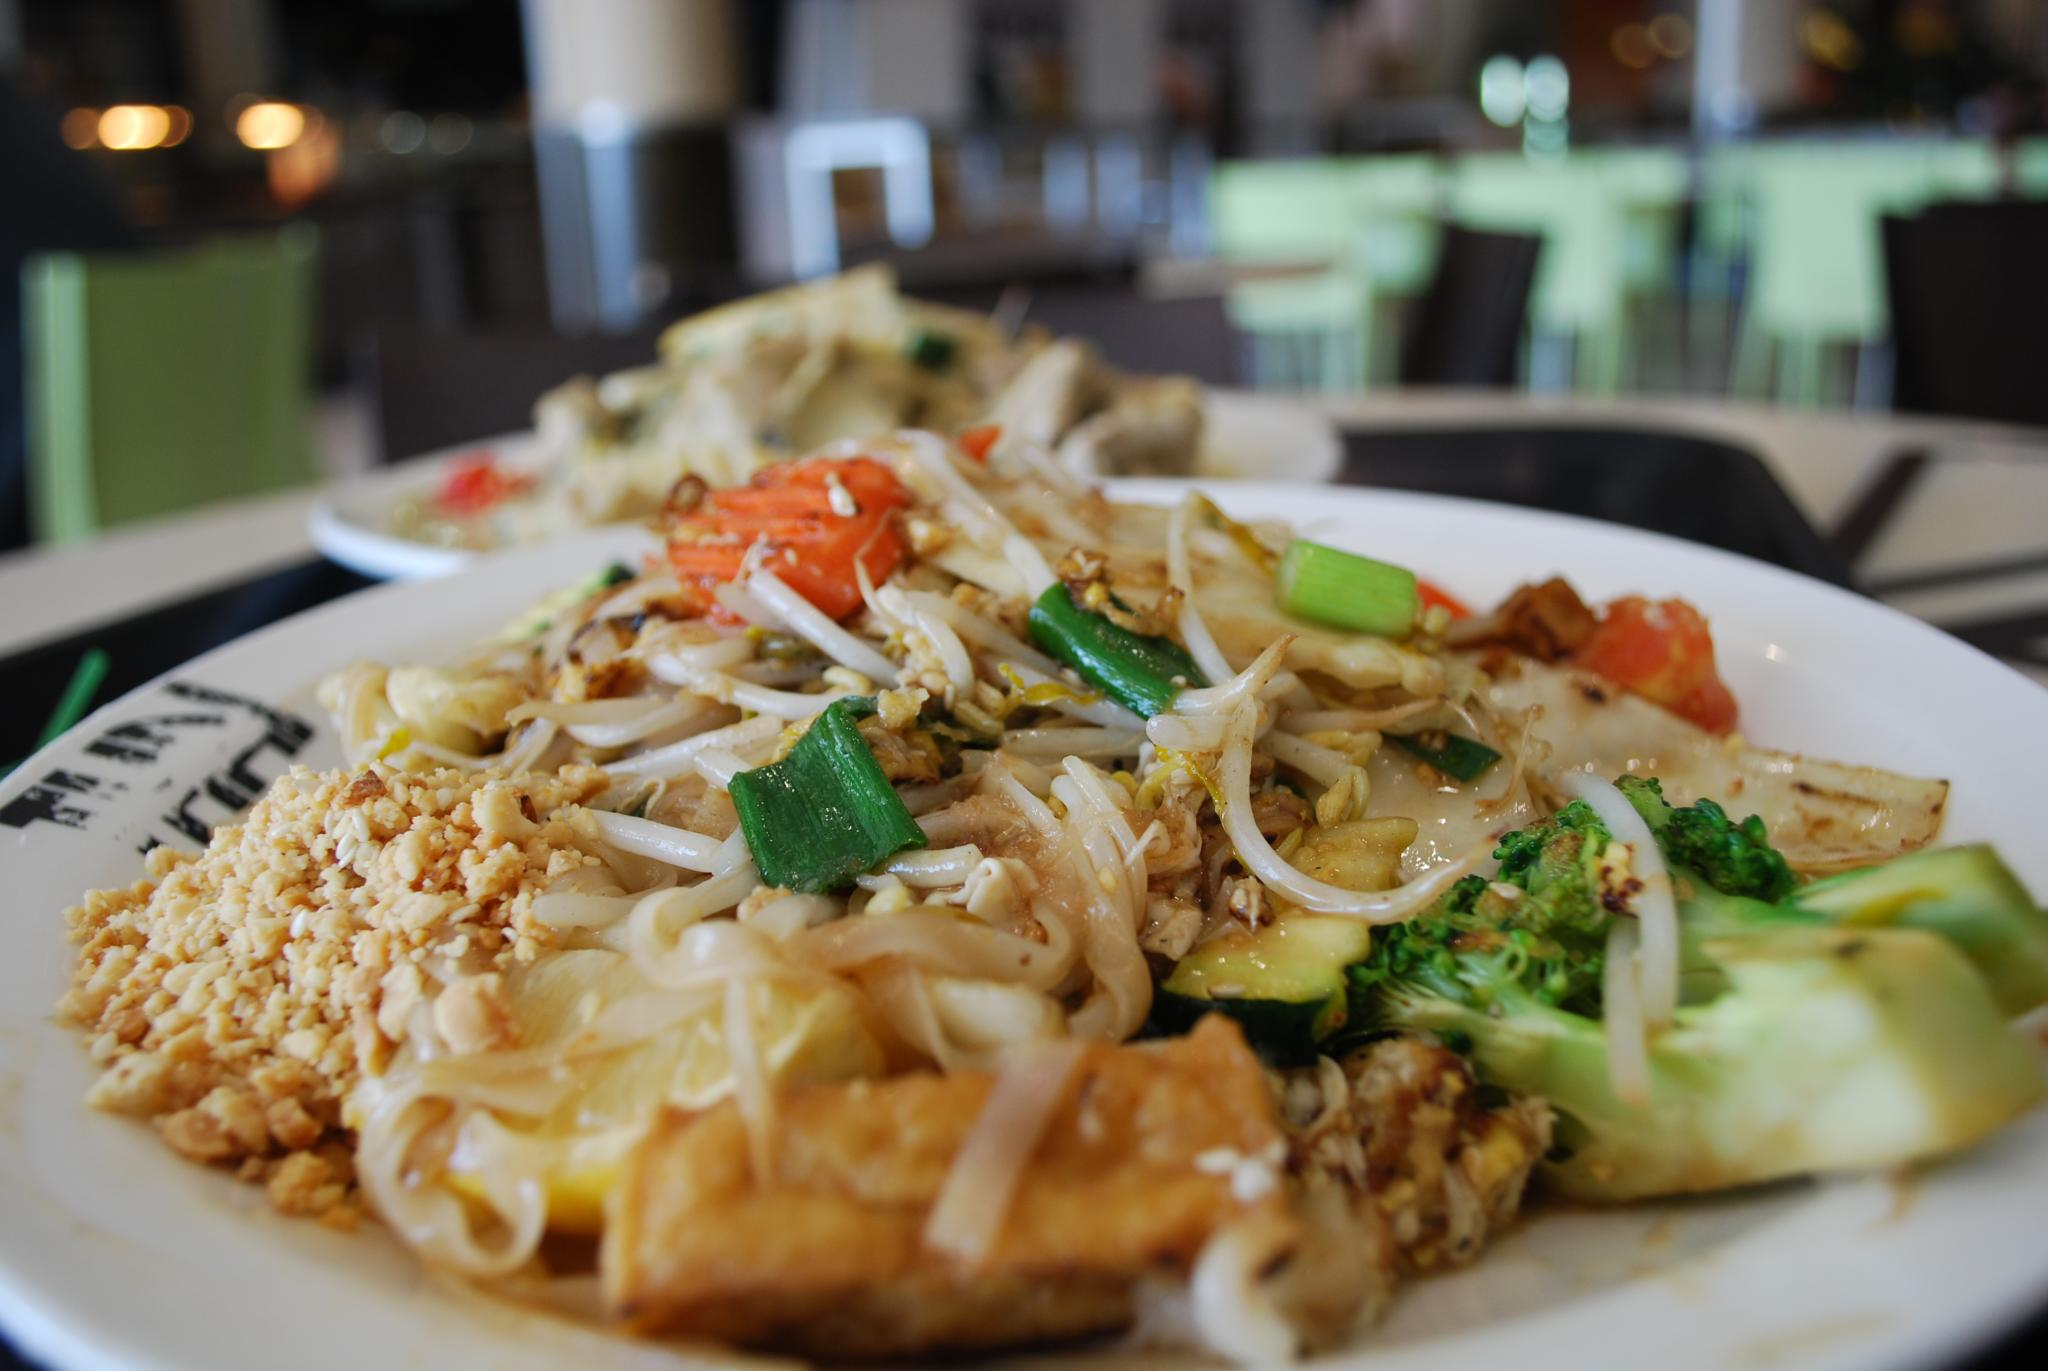 Thai food: A vegetarian\'s guide to ordering and eating | CNN Travel